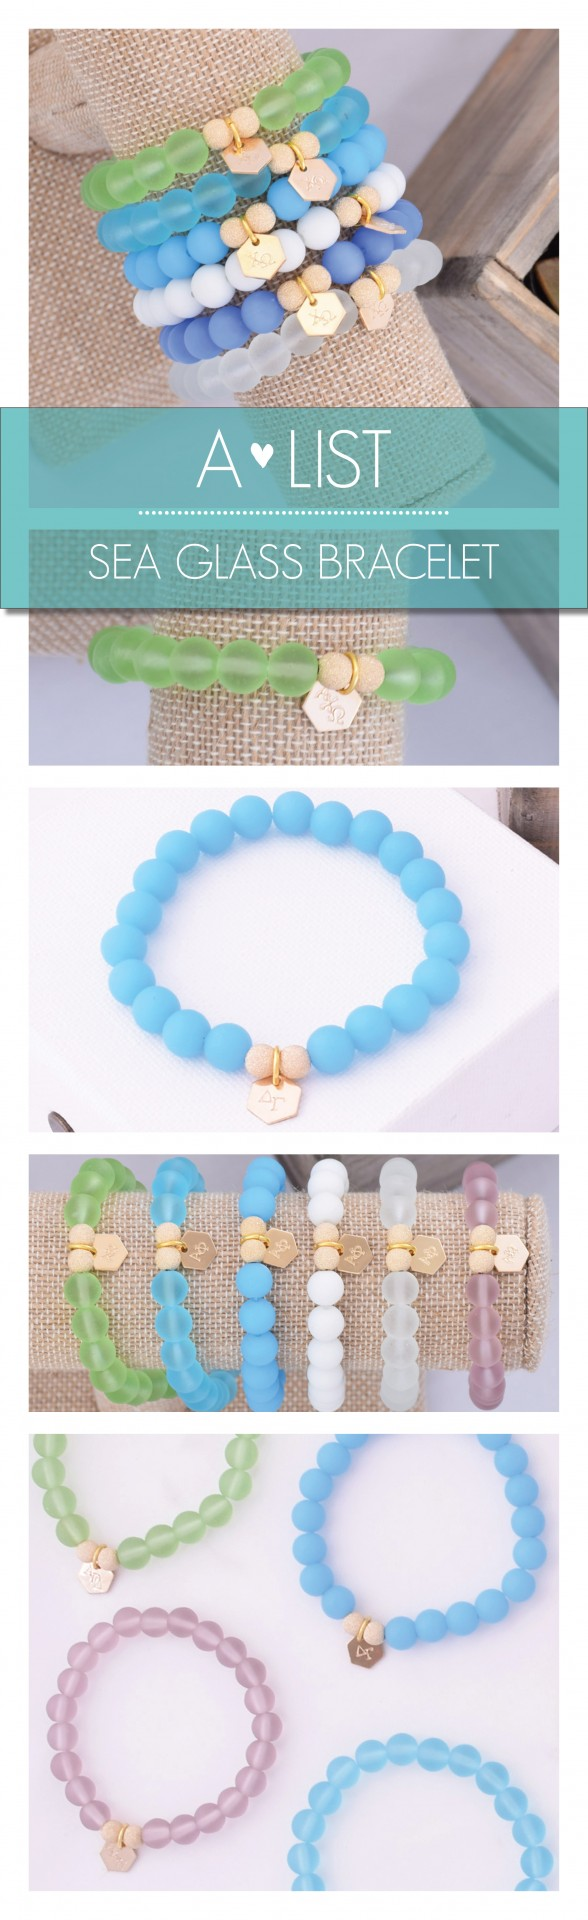 Seas the day with these cute Sorority Sea Glass Bracelets. Available in an assortment of colors from www.alistgreek.com. Makes a great initiation, bid day or big/little gift! #sorority